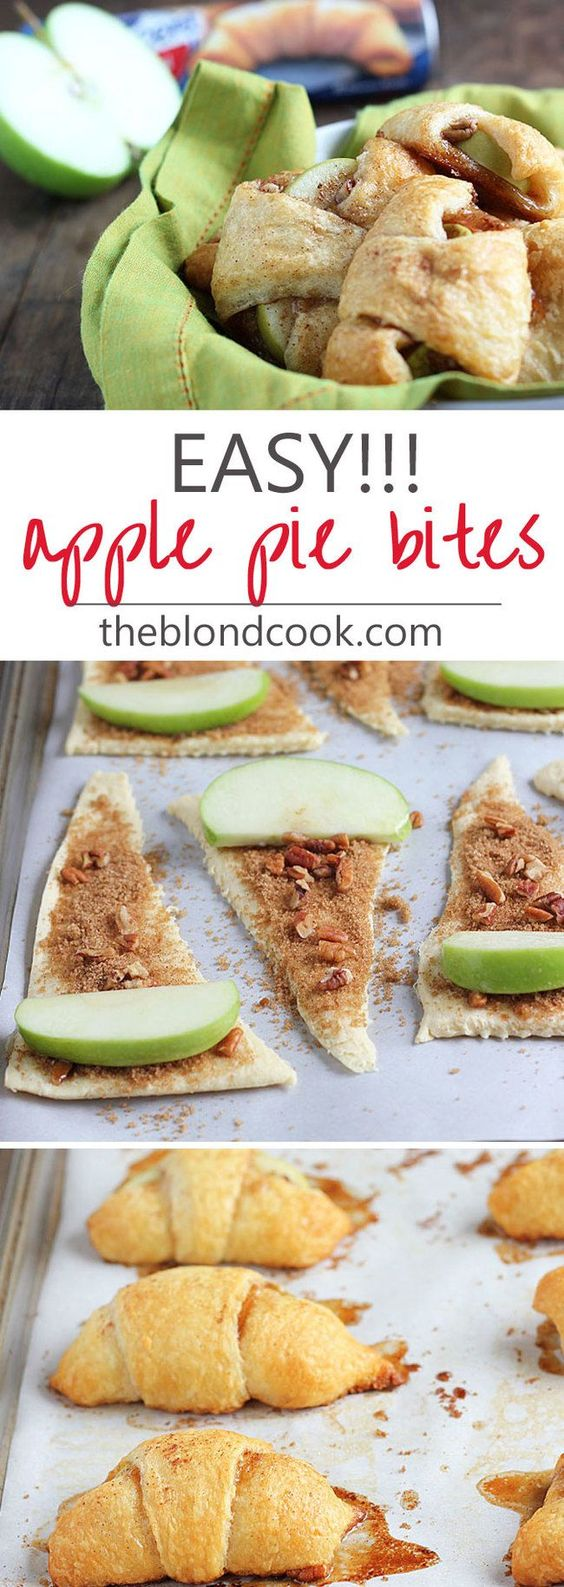 APPLE PIE BITES #apple #pie #bites #cake #cakerecipes #dessert #dessertrecipes #cookie #cookierecipes